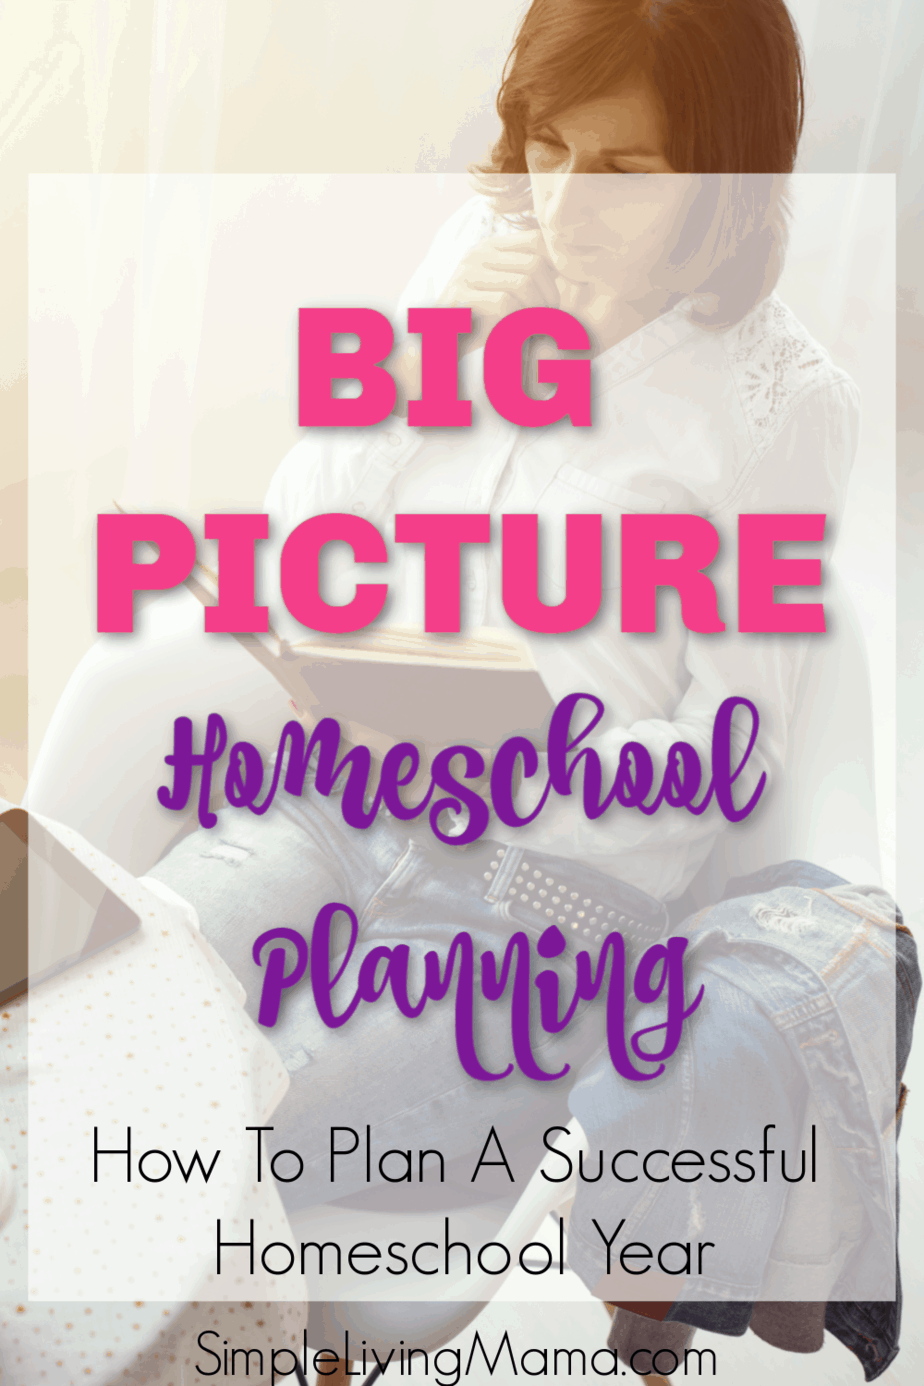 Learn how to plan your homeschool year with a homeschool planning guide